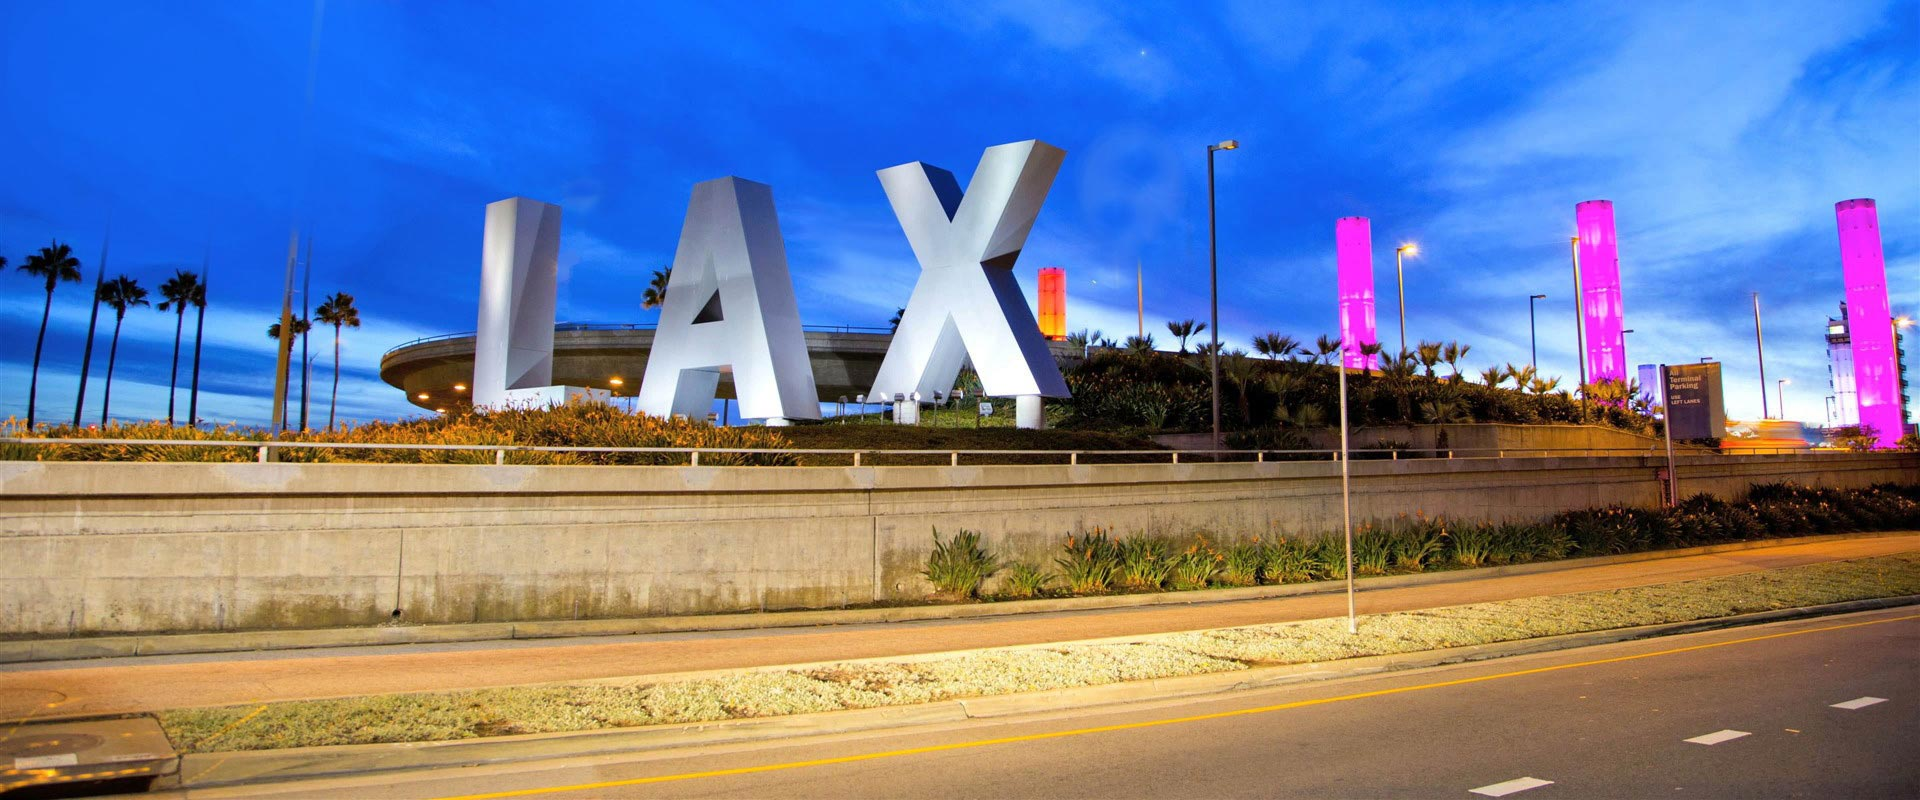 Background Image LAX Sign in All Capital Letter with Pylons